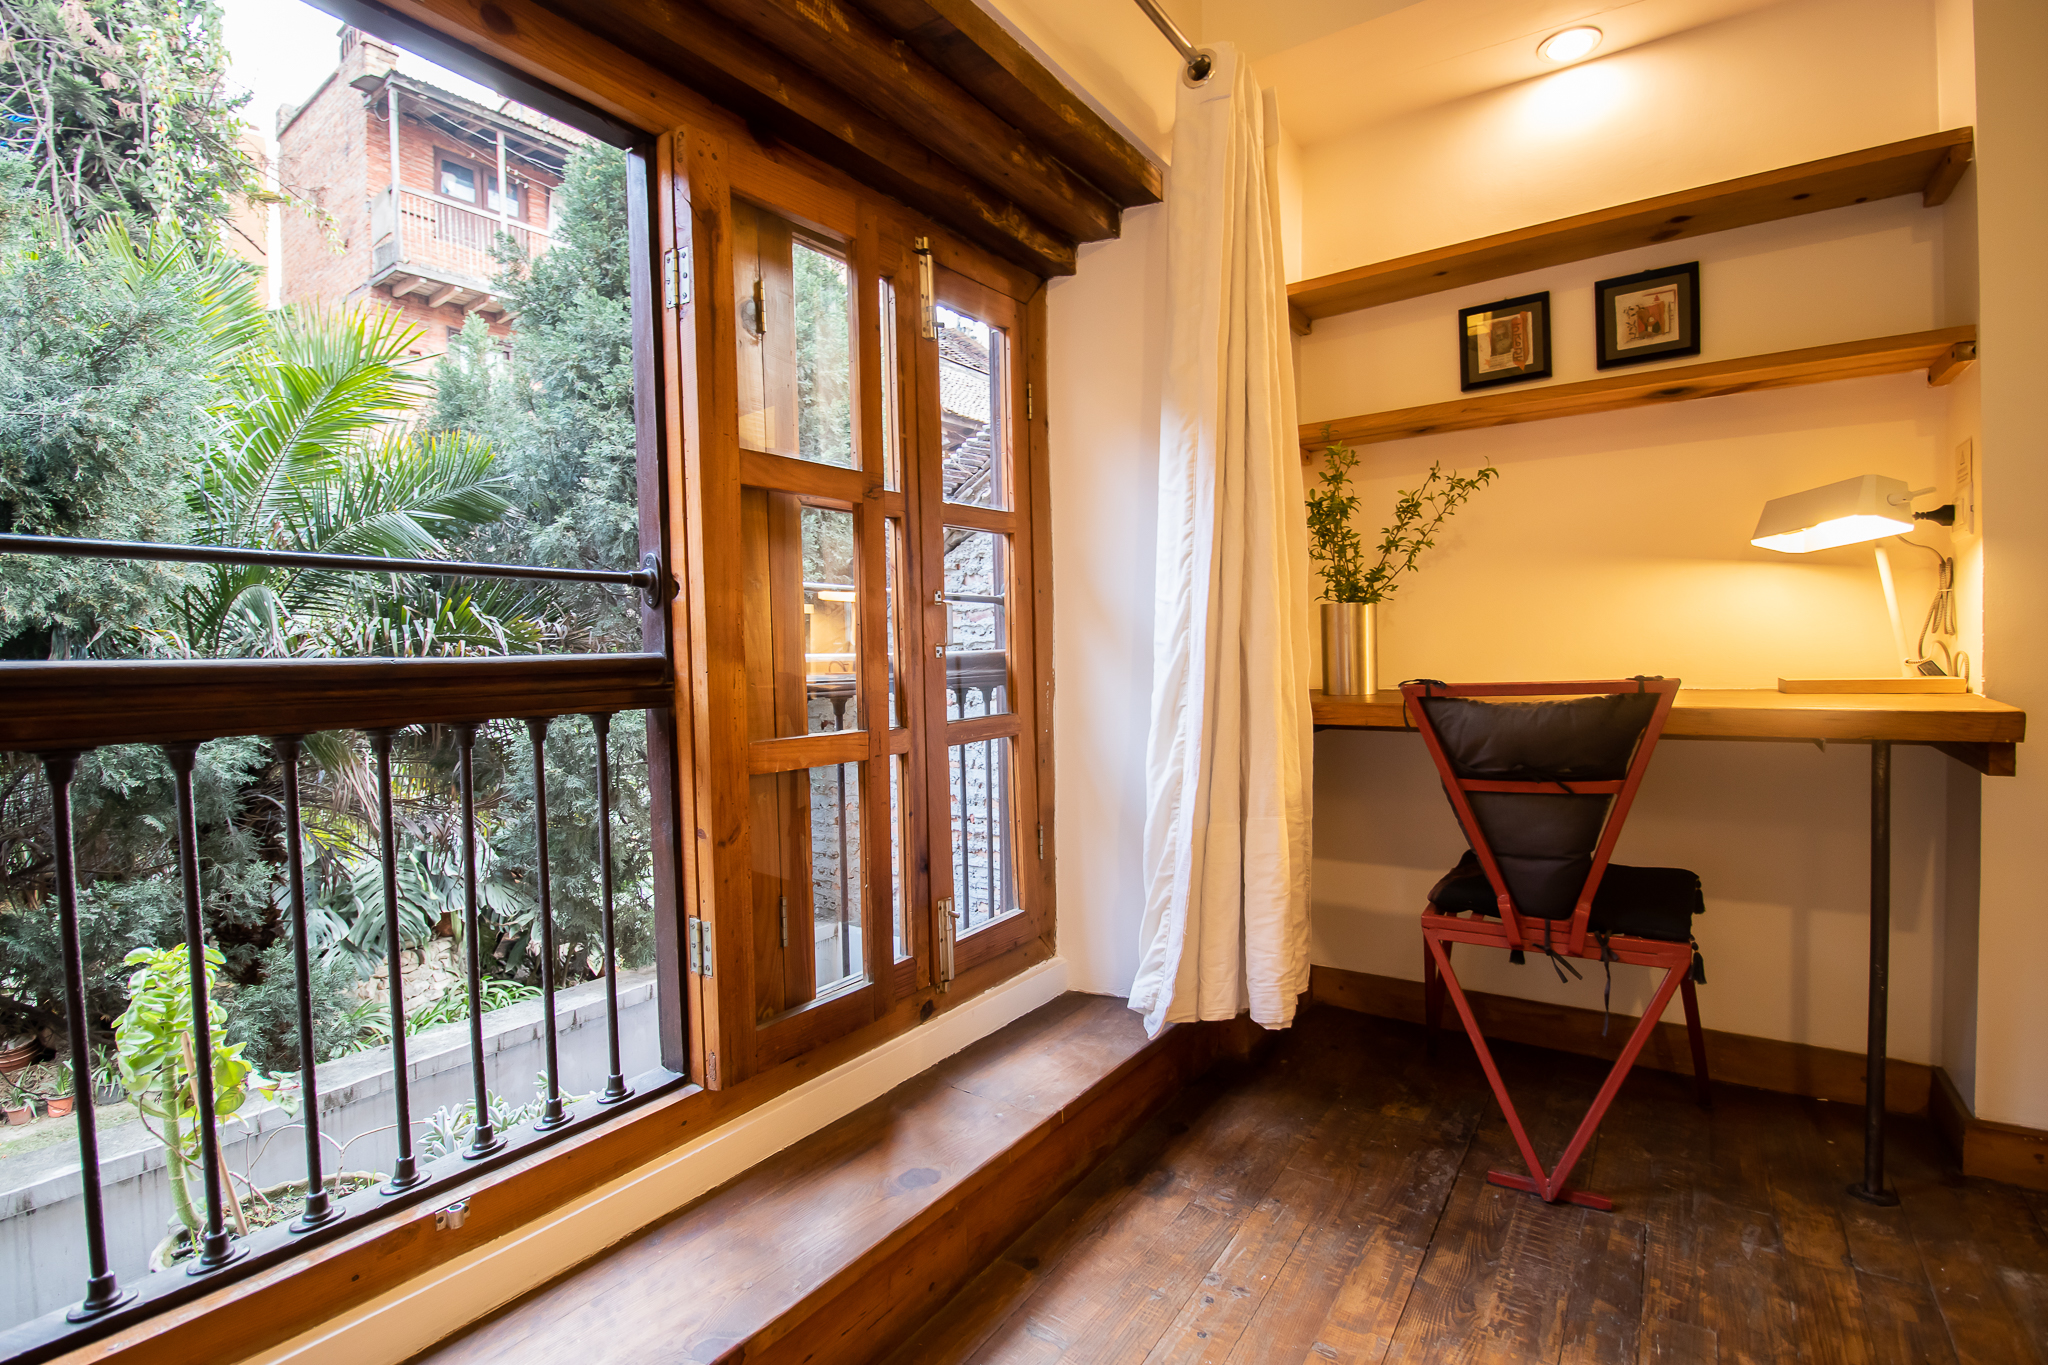 Full lengh window with a direct view over a garden. You feel surrounded by nature